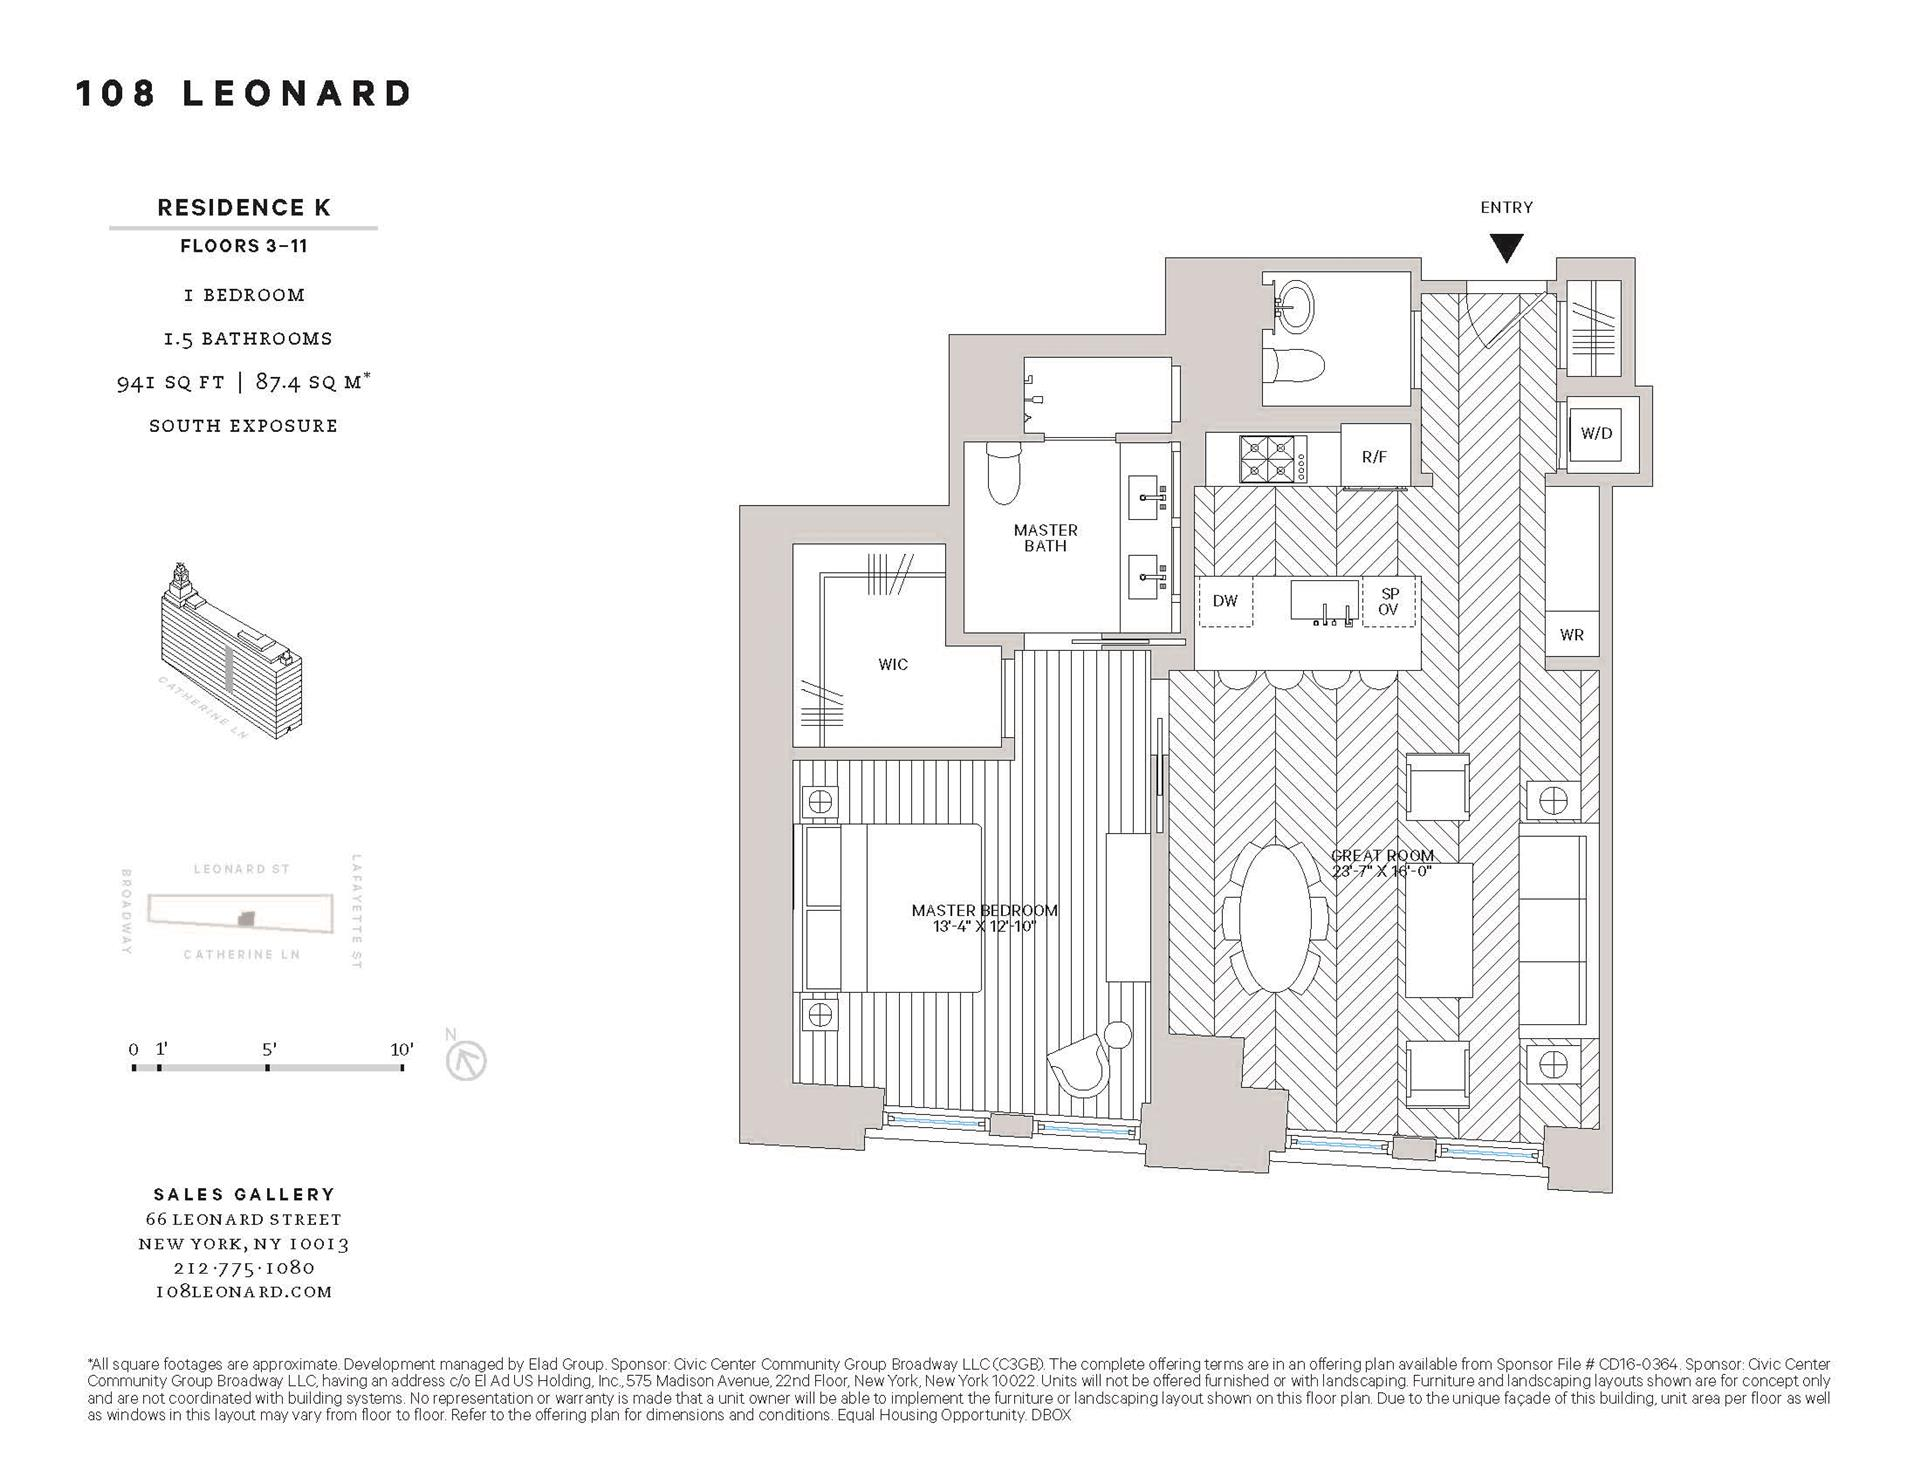 Floor plan of 108 Leonard St, 9K - TriBeCa, New York